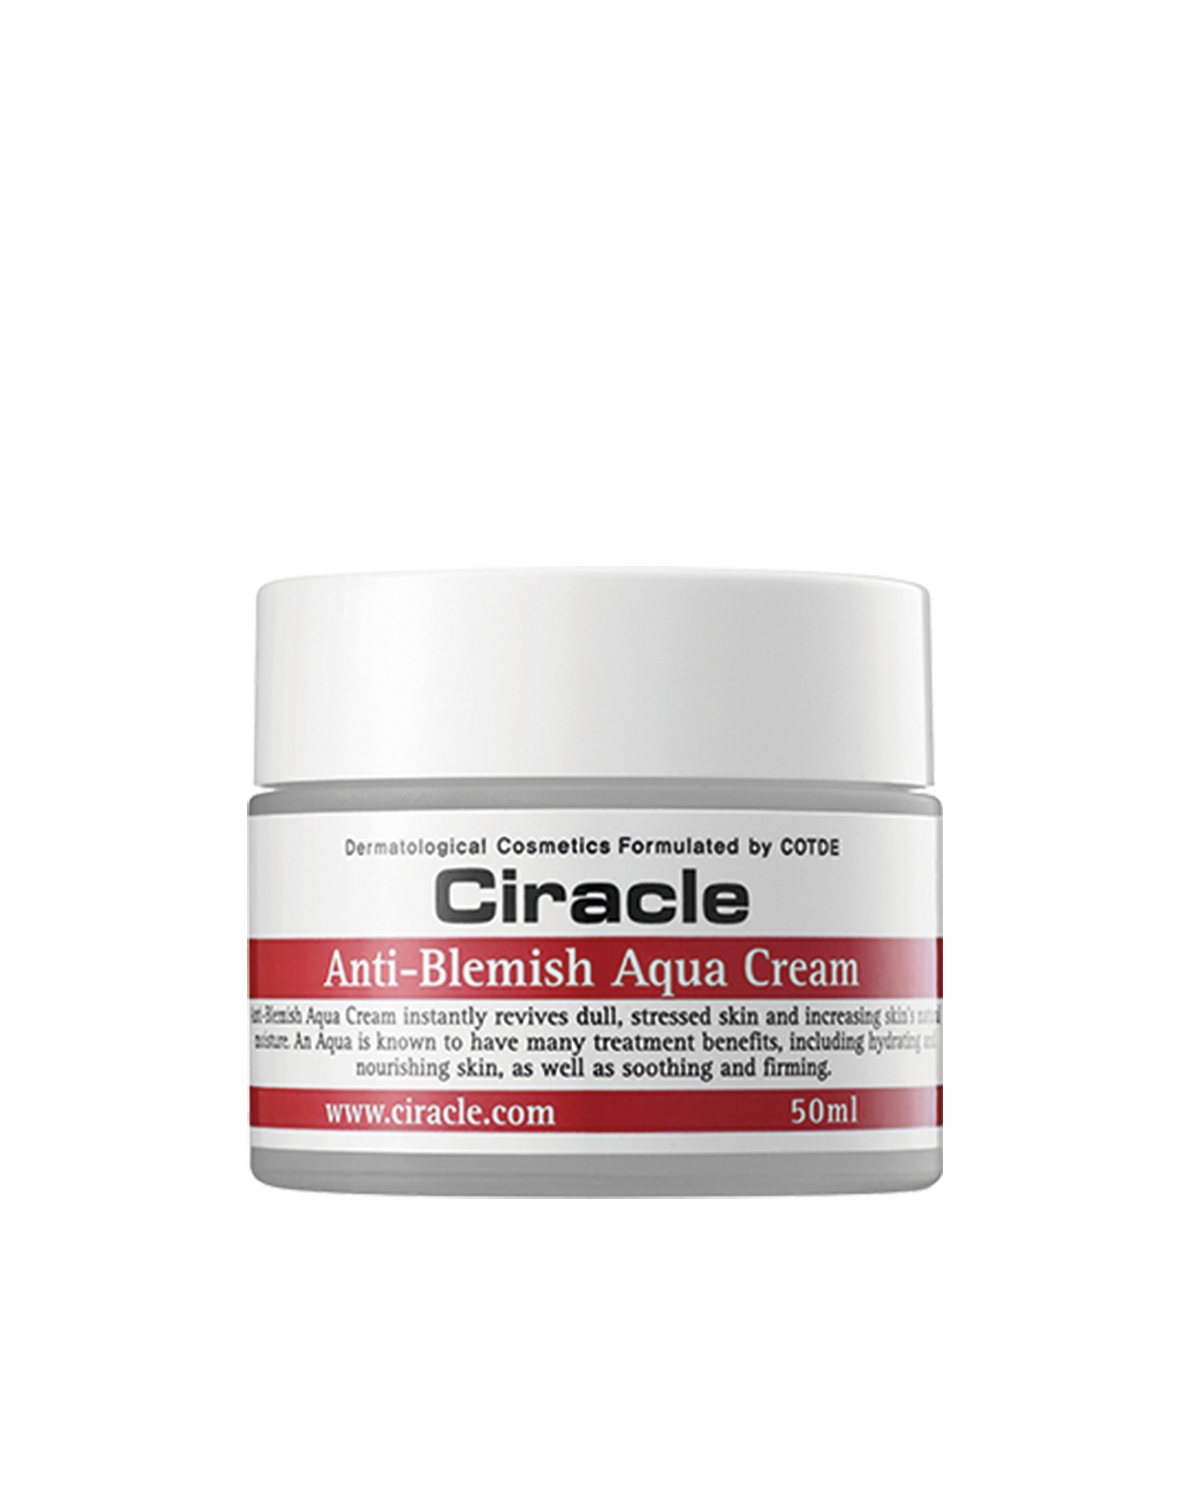 CIRACLE Anti-Blemish Aqua Cream 50 ml